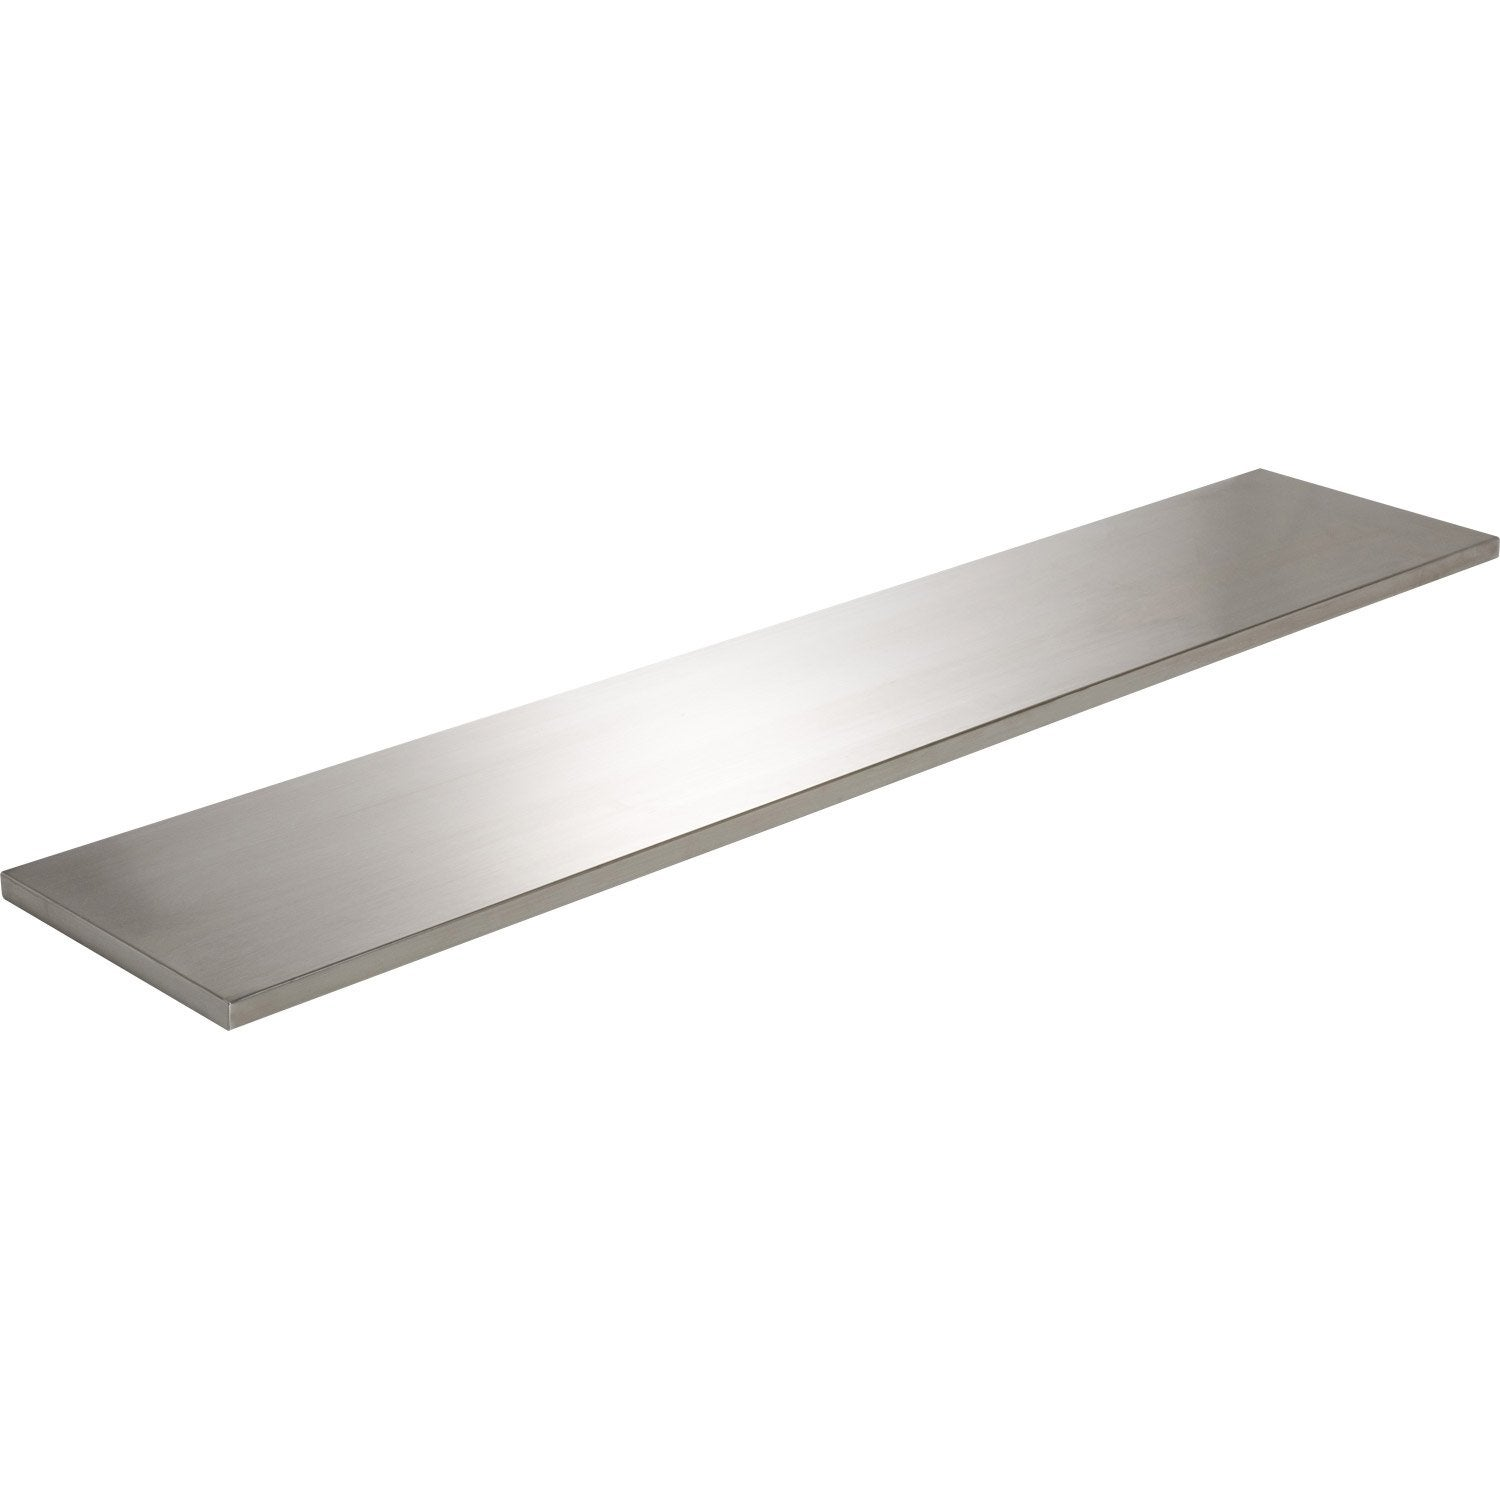 Etag re murale inox x cm mm leroy merlin for Etagere inox salle de bain